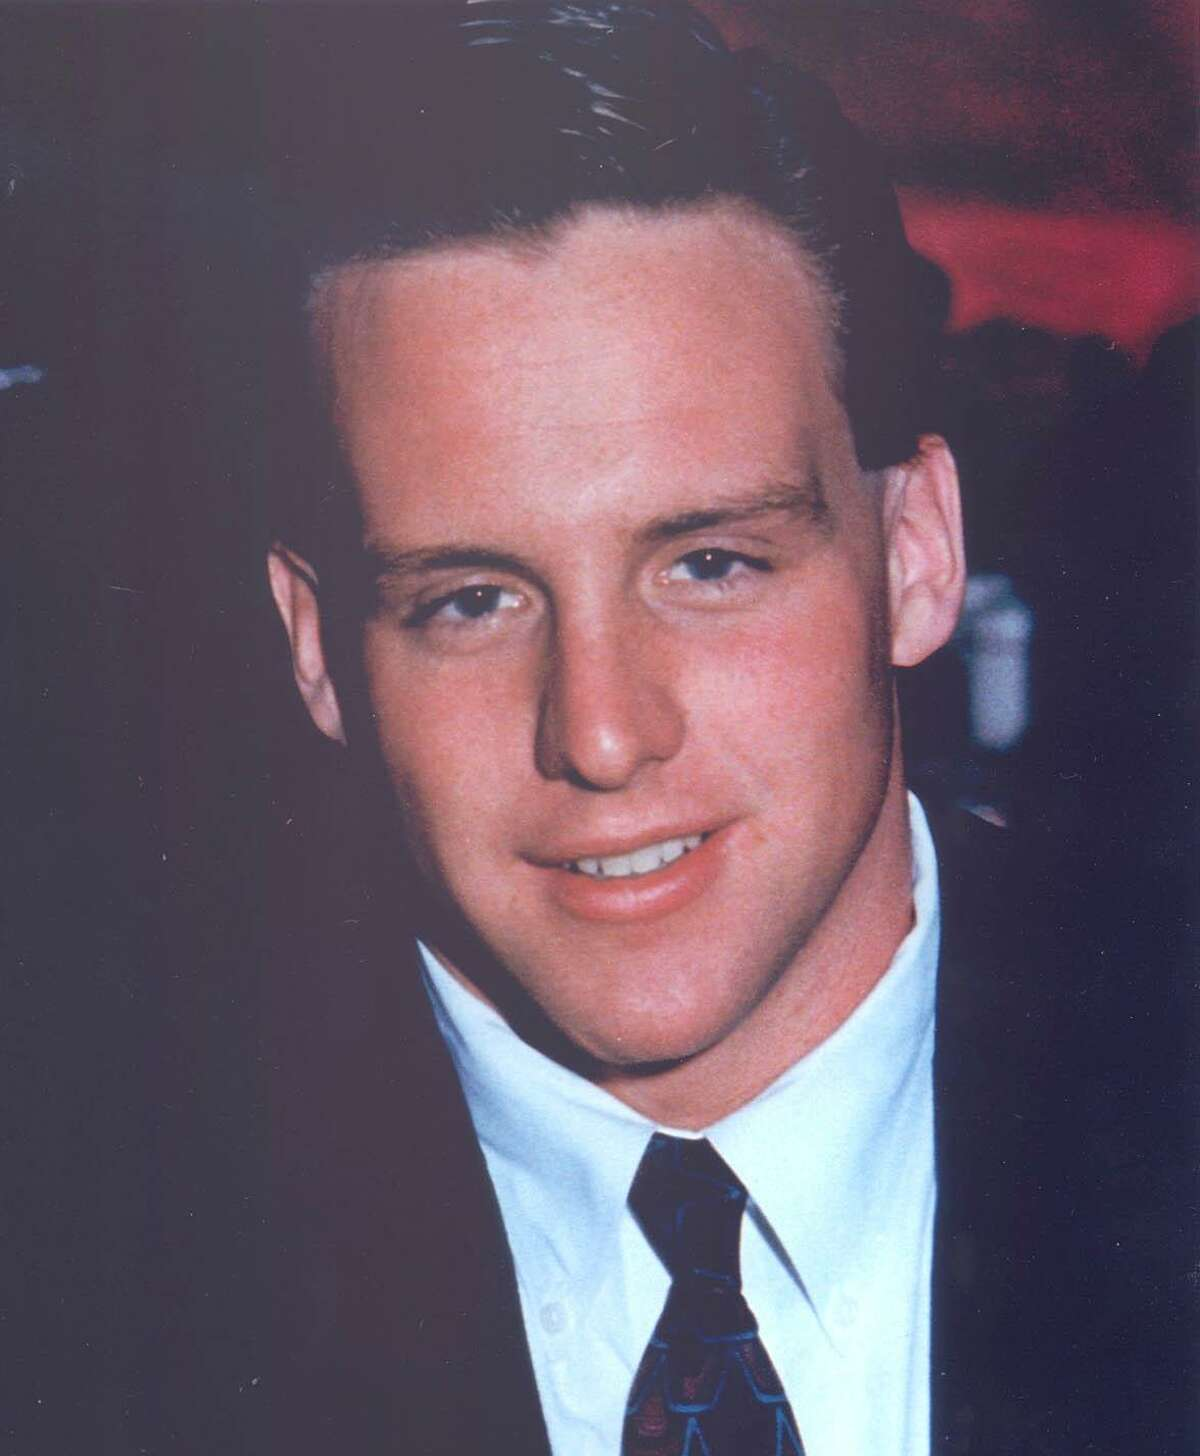 Seth Morris, who died in the Sept. 11, 2001 attacks on the World Trade Center